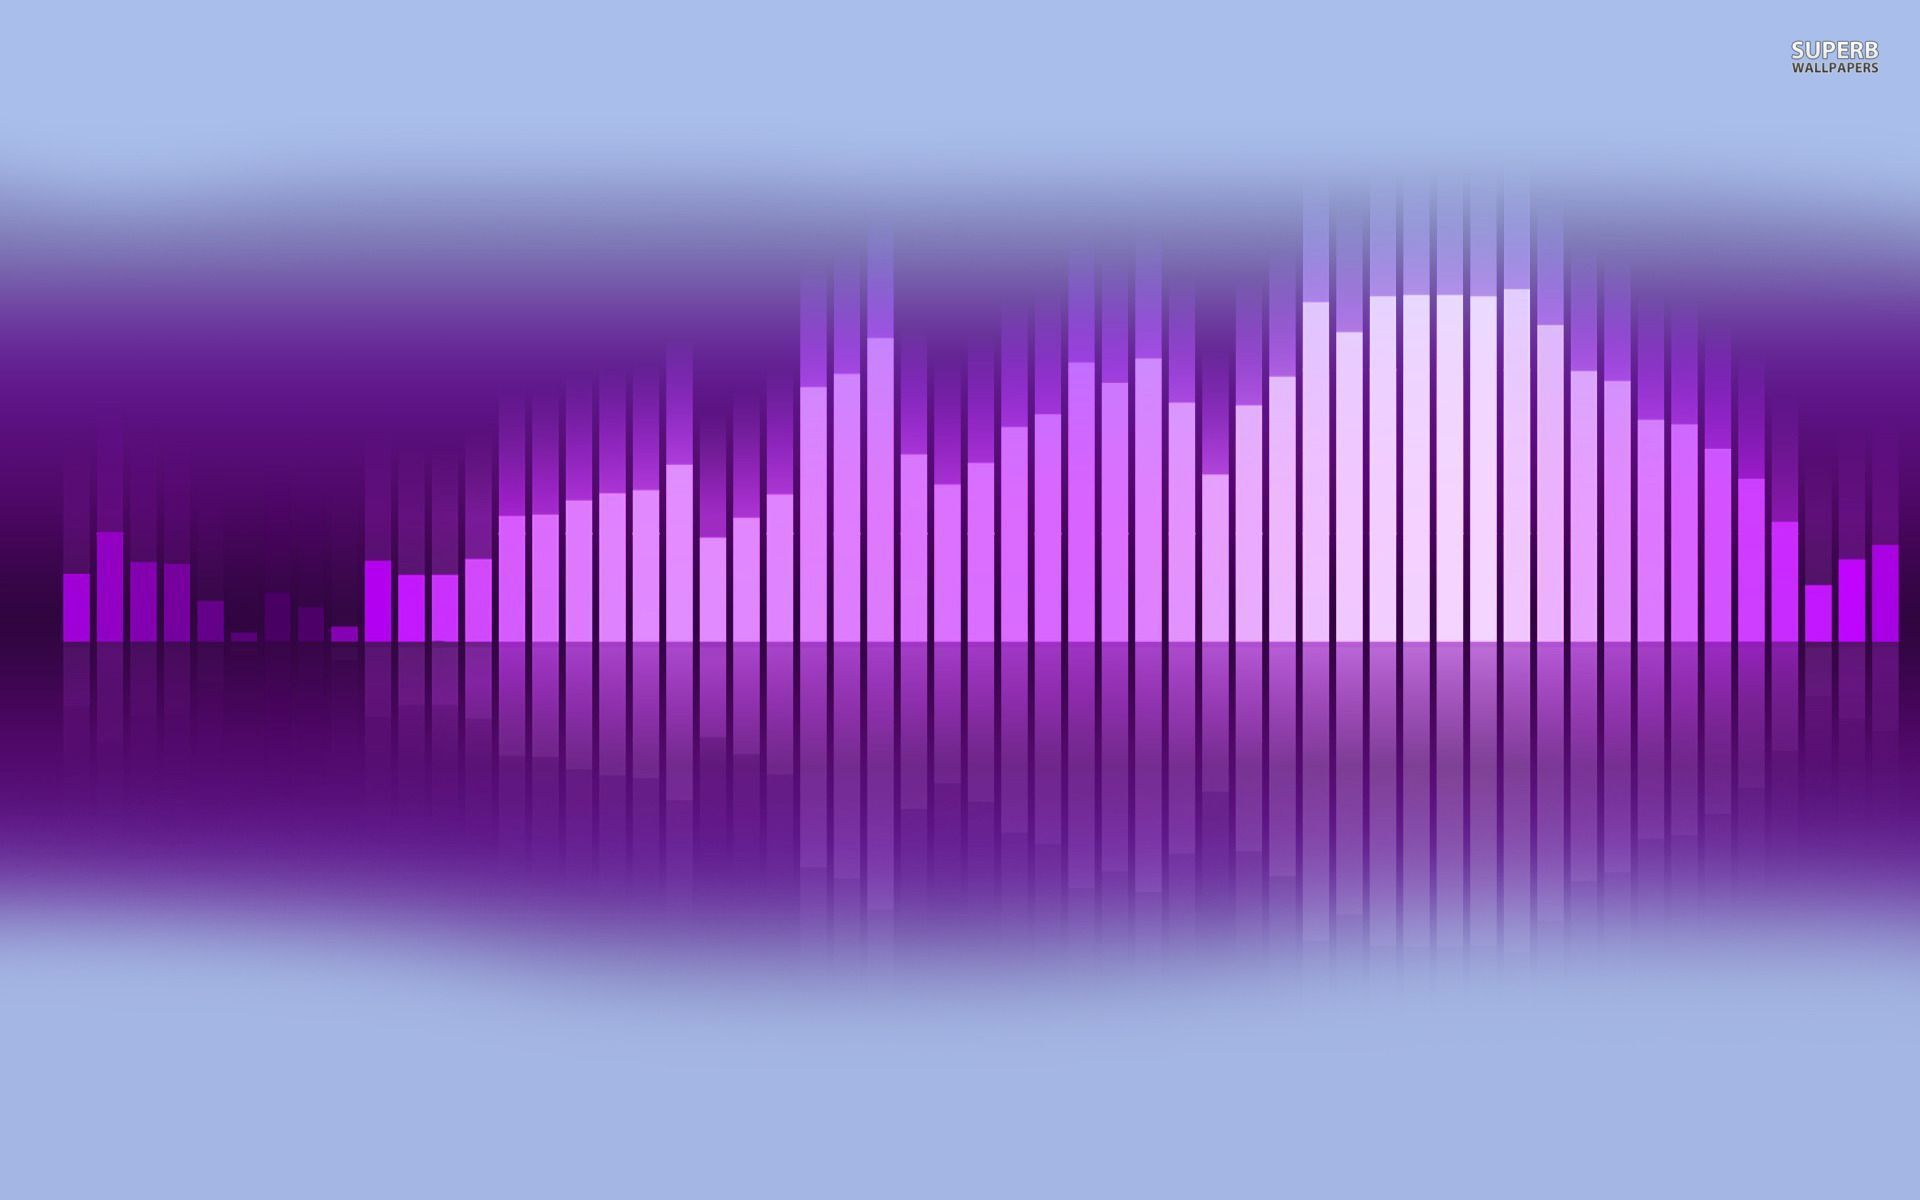 wallpapers for gt sound waves wallpaper white background